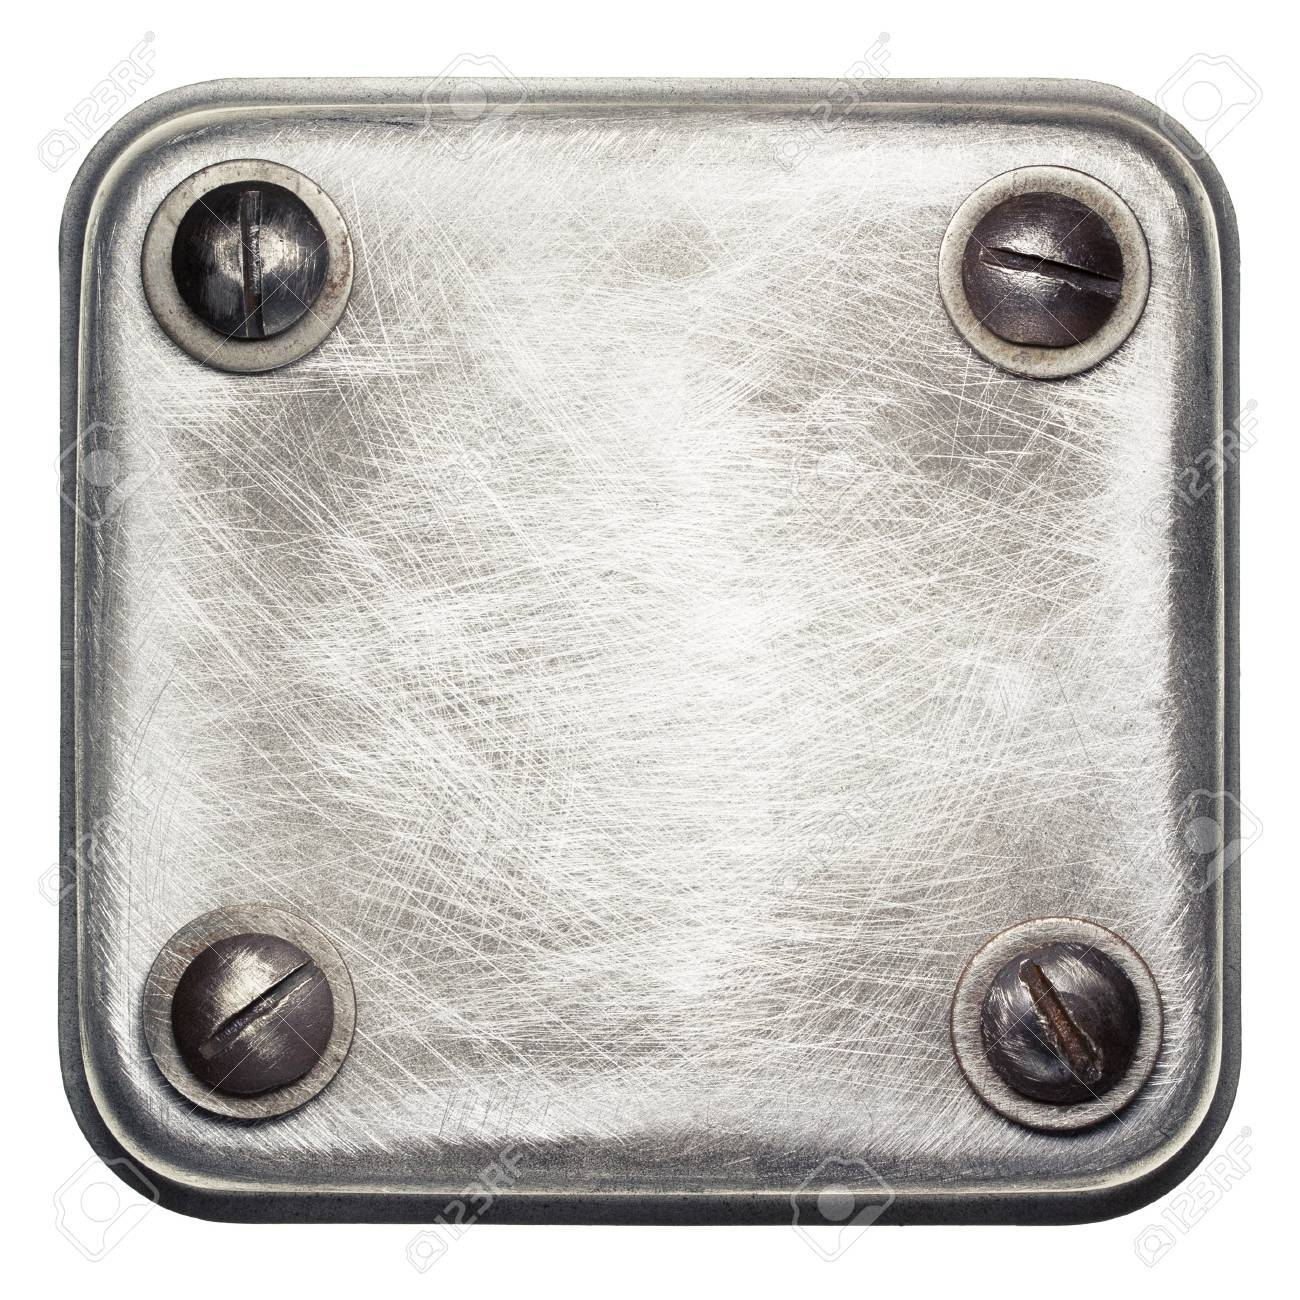 Metal plate texture with screws Stock Photo - 16406893